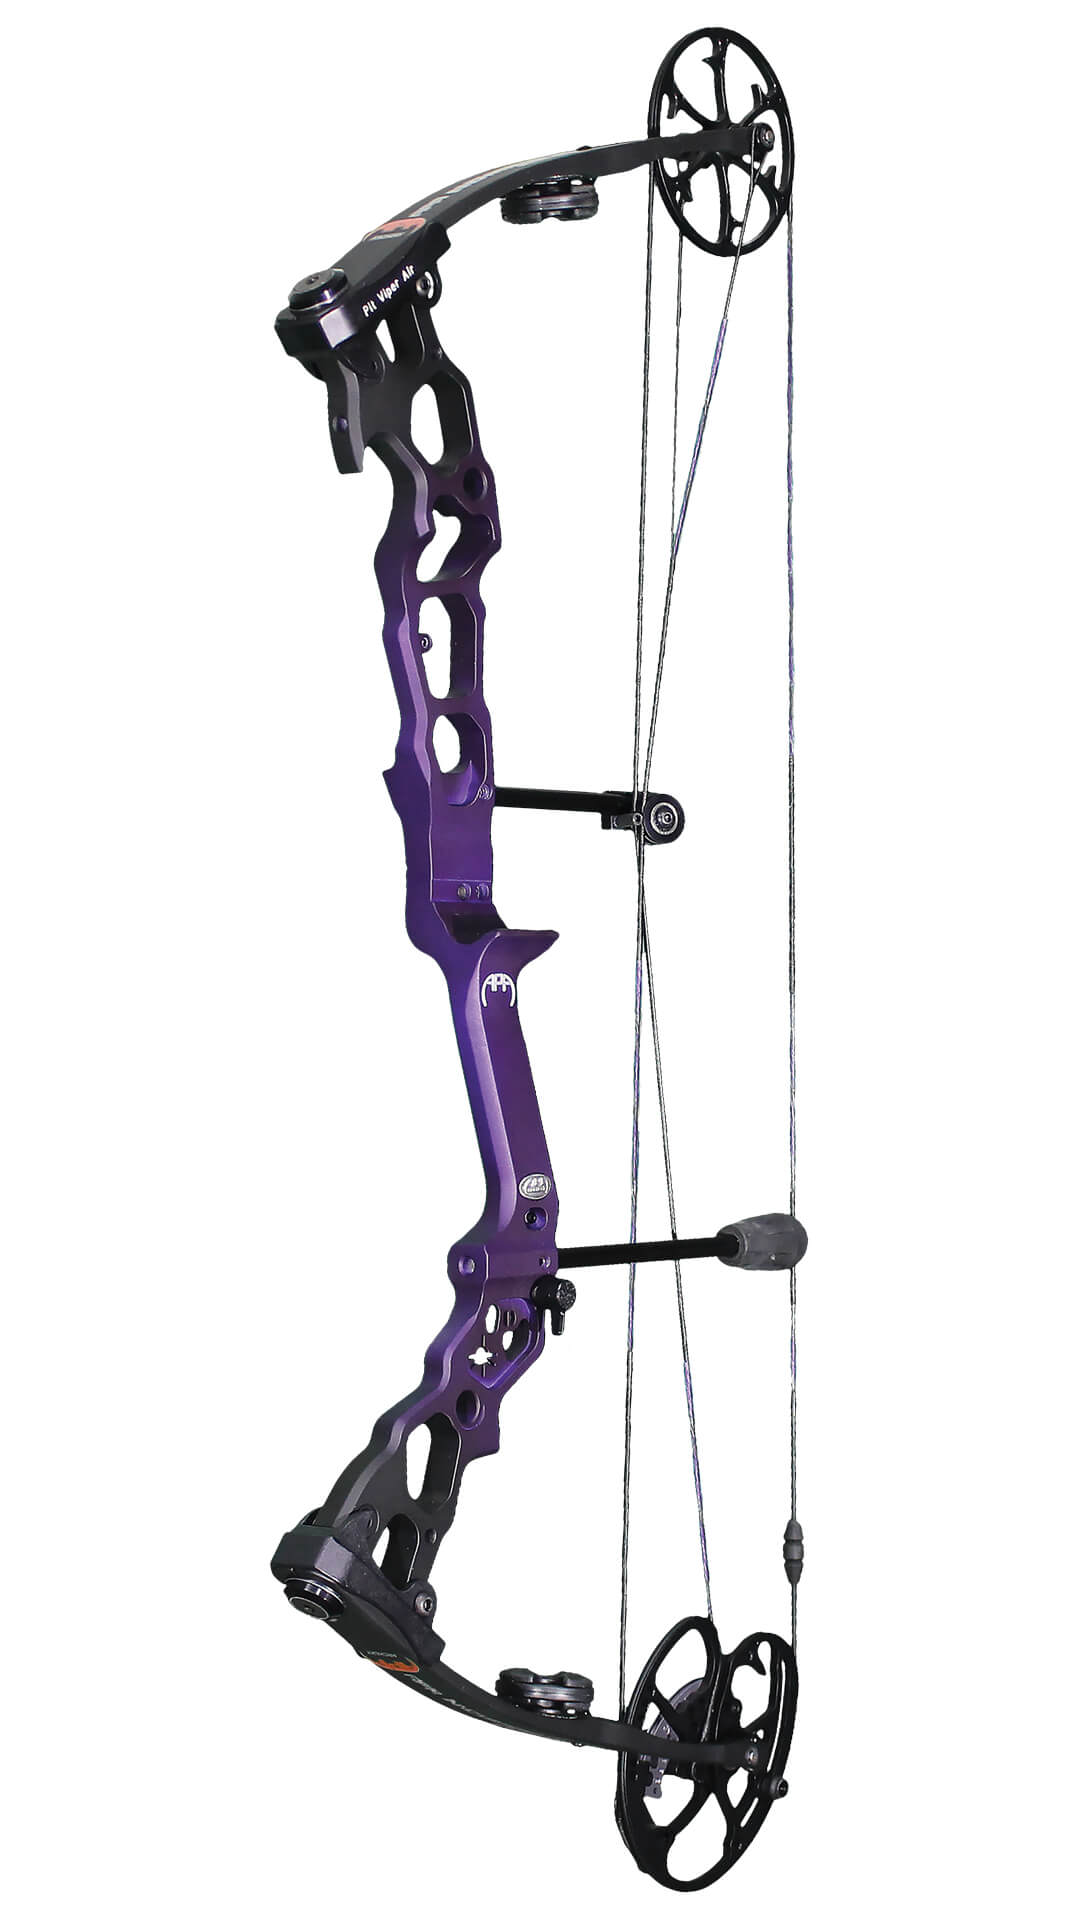 APA Pit Viper Air Compound Bow